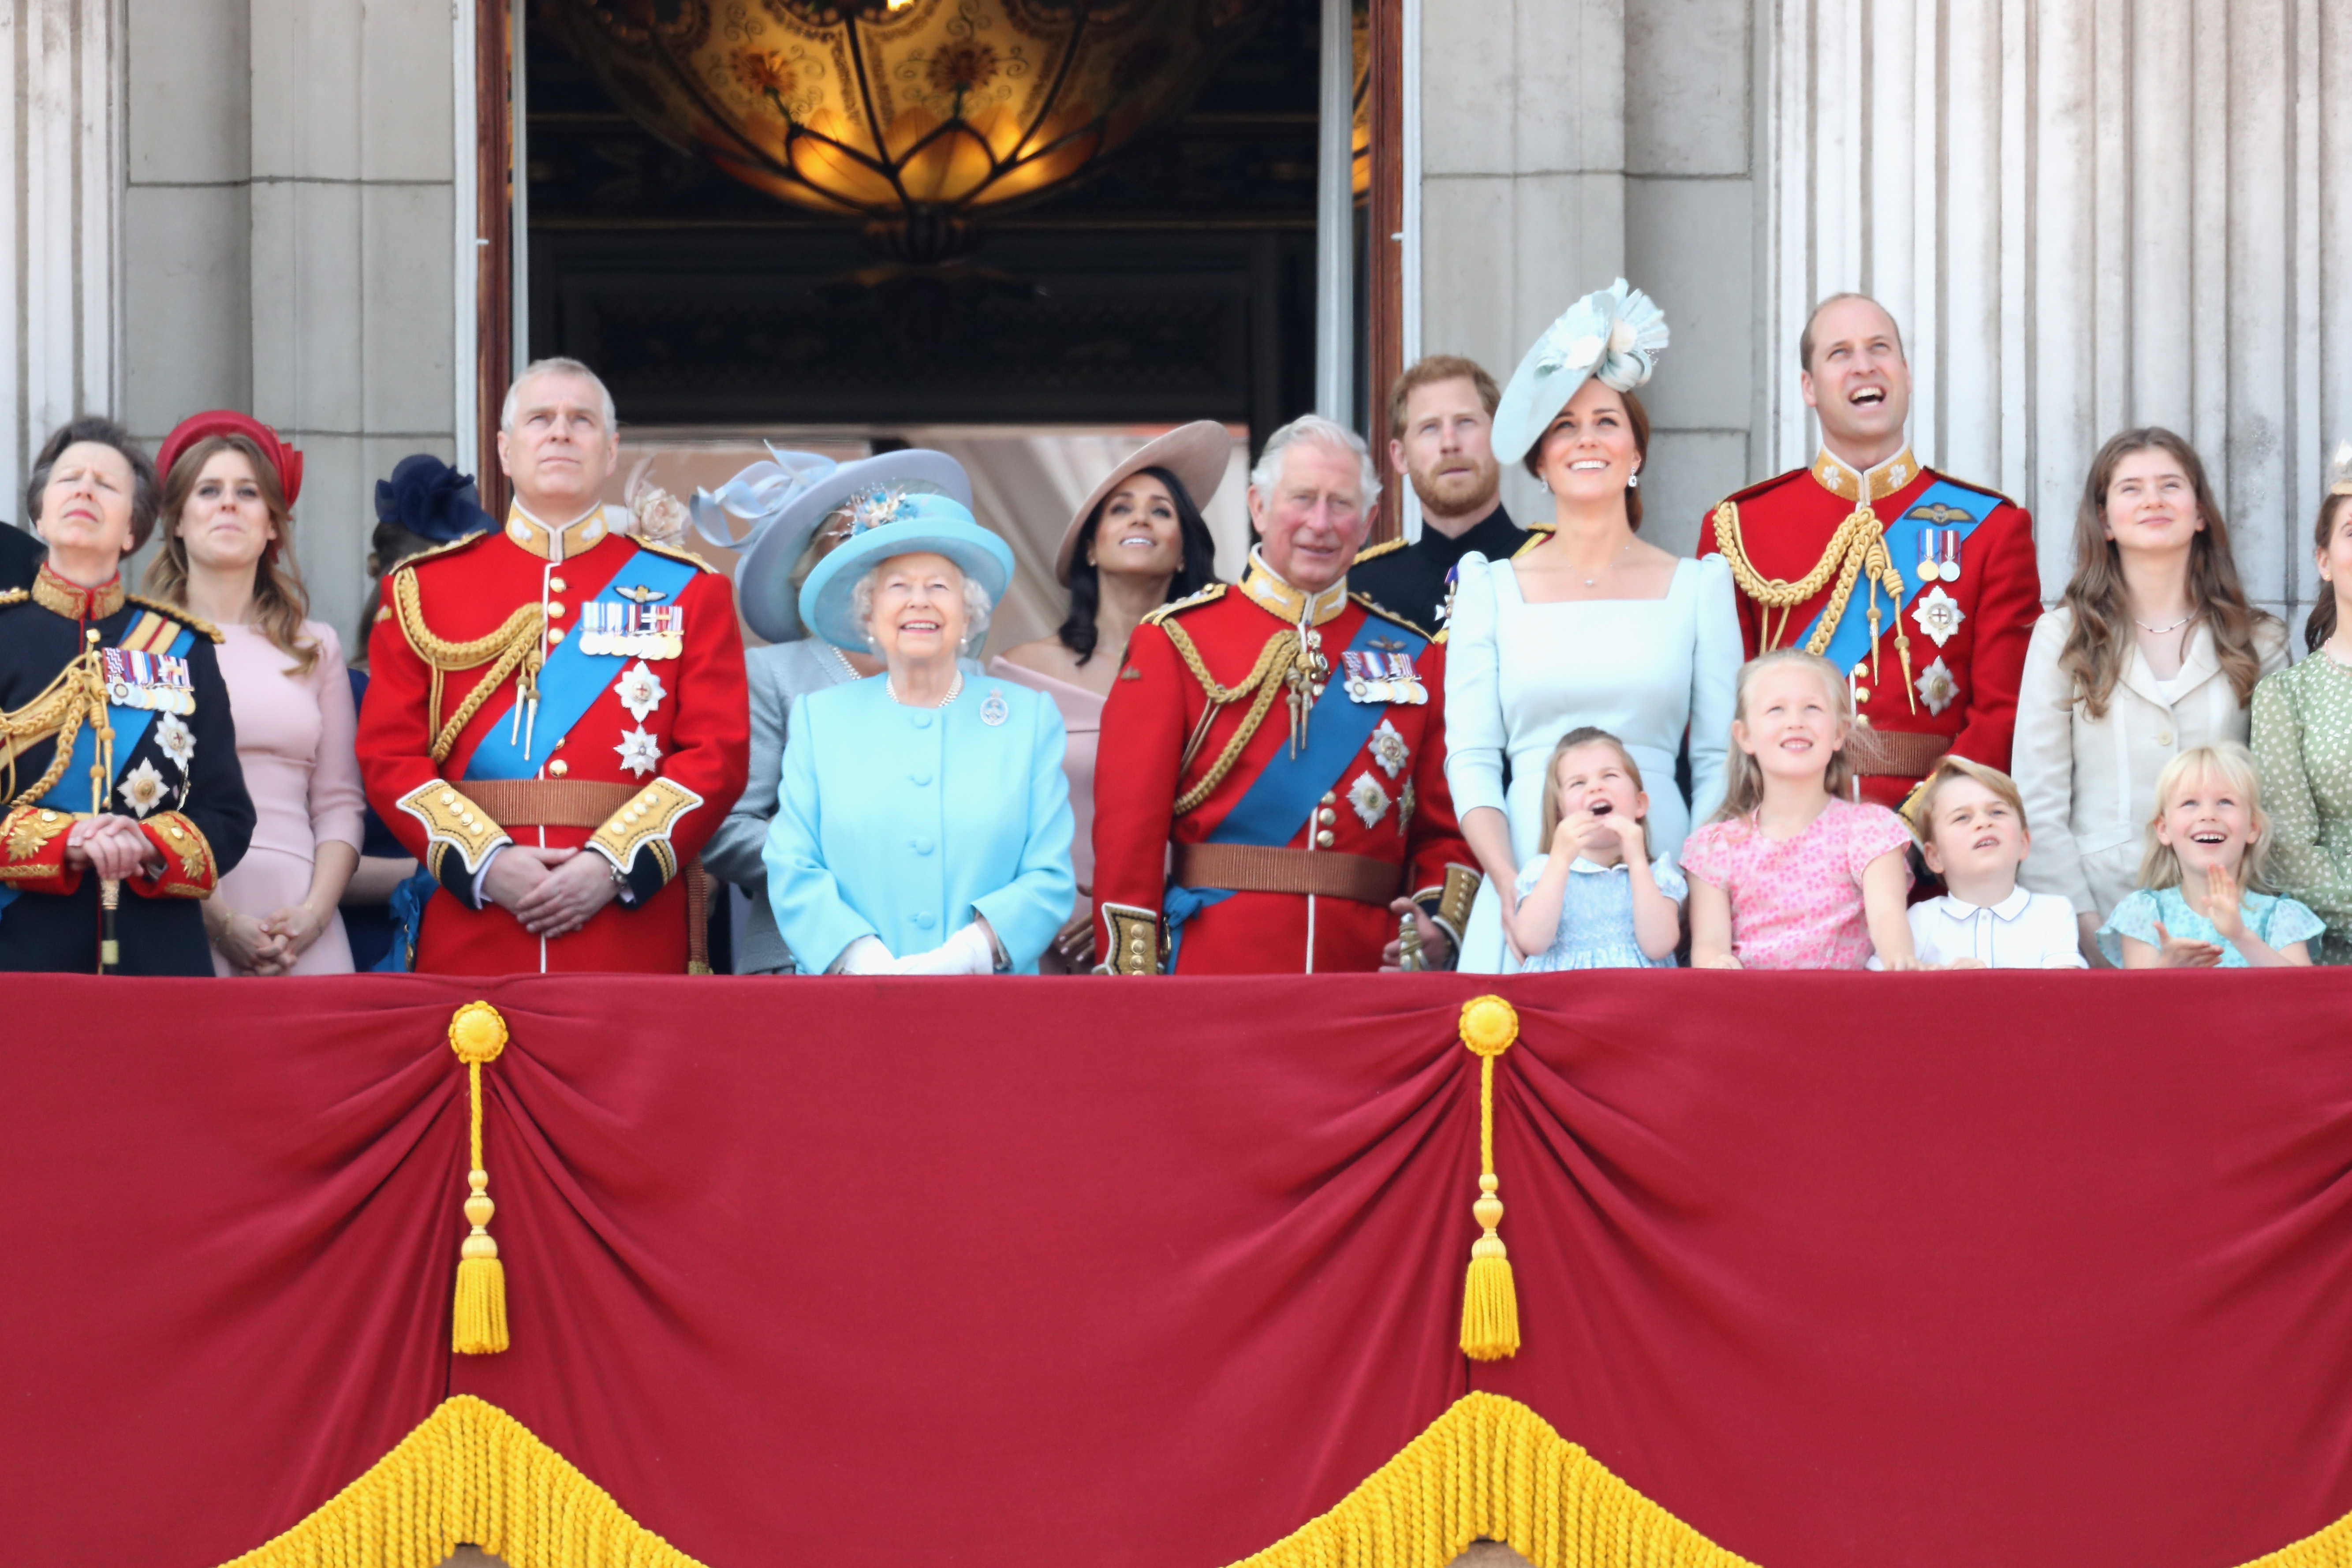 Royal Family Trooping the Colour Getty Images